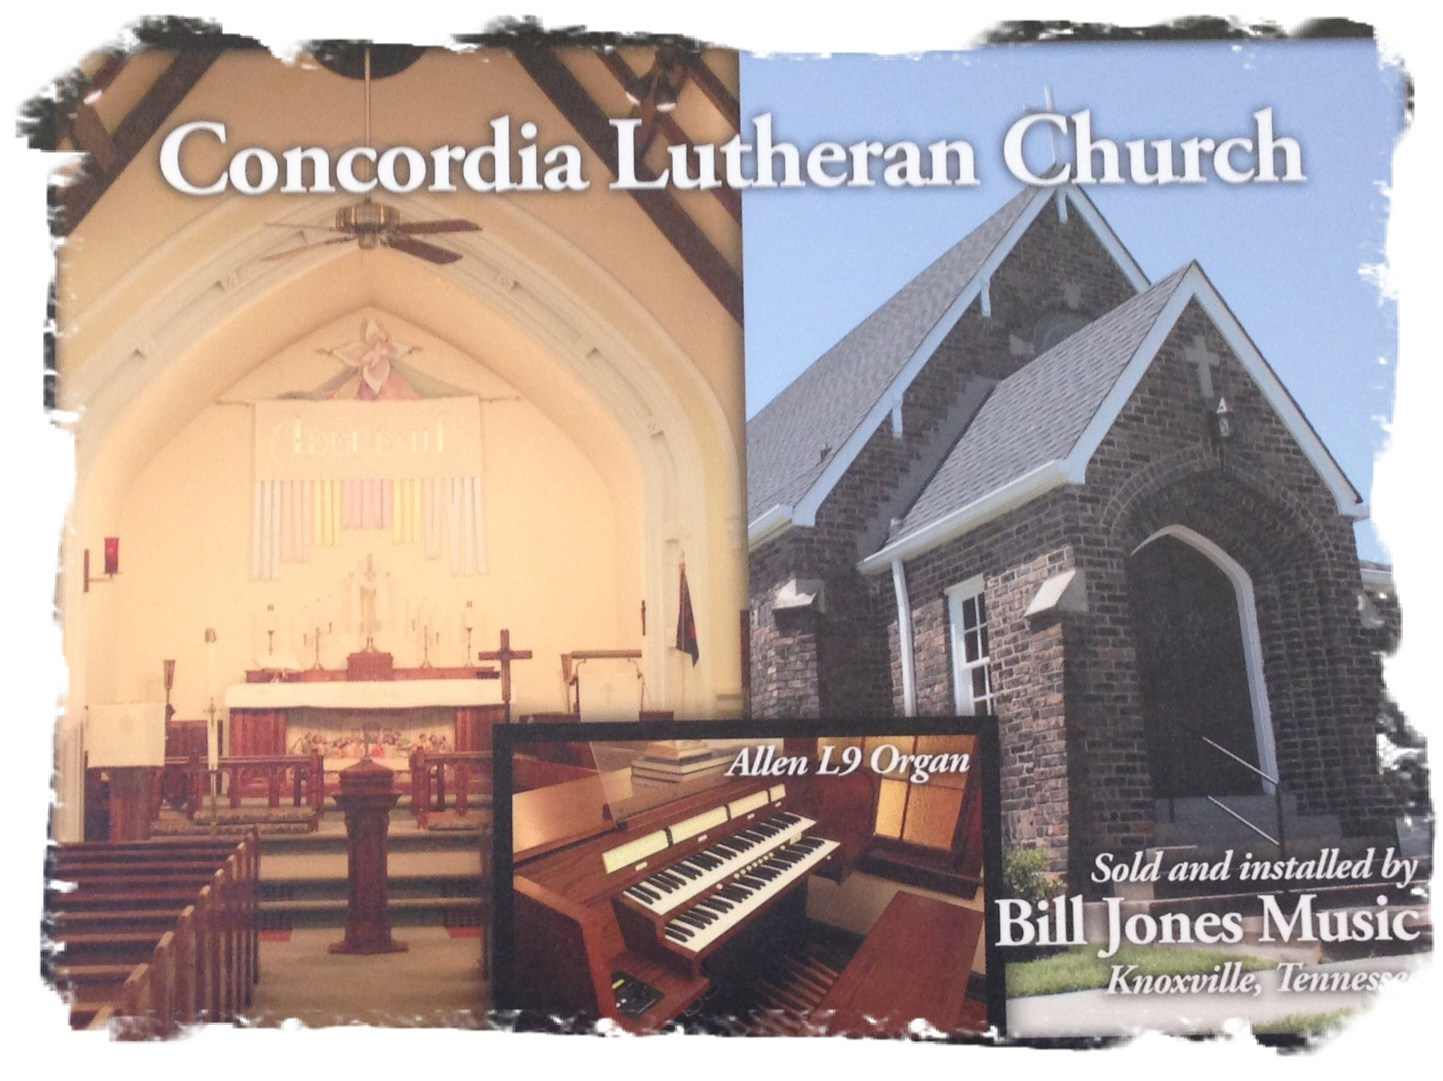 Concordia Lutheran Church Allen L9 Organ